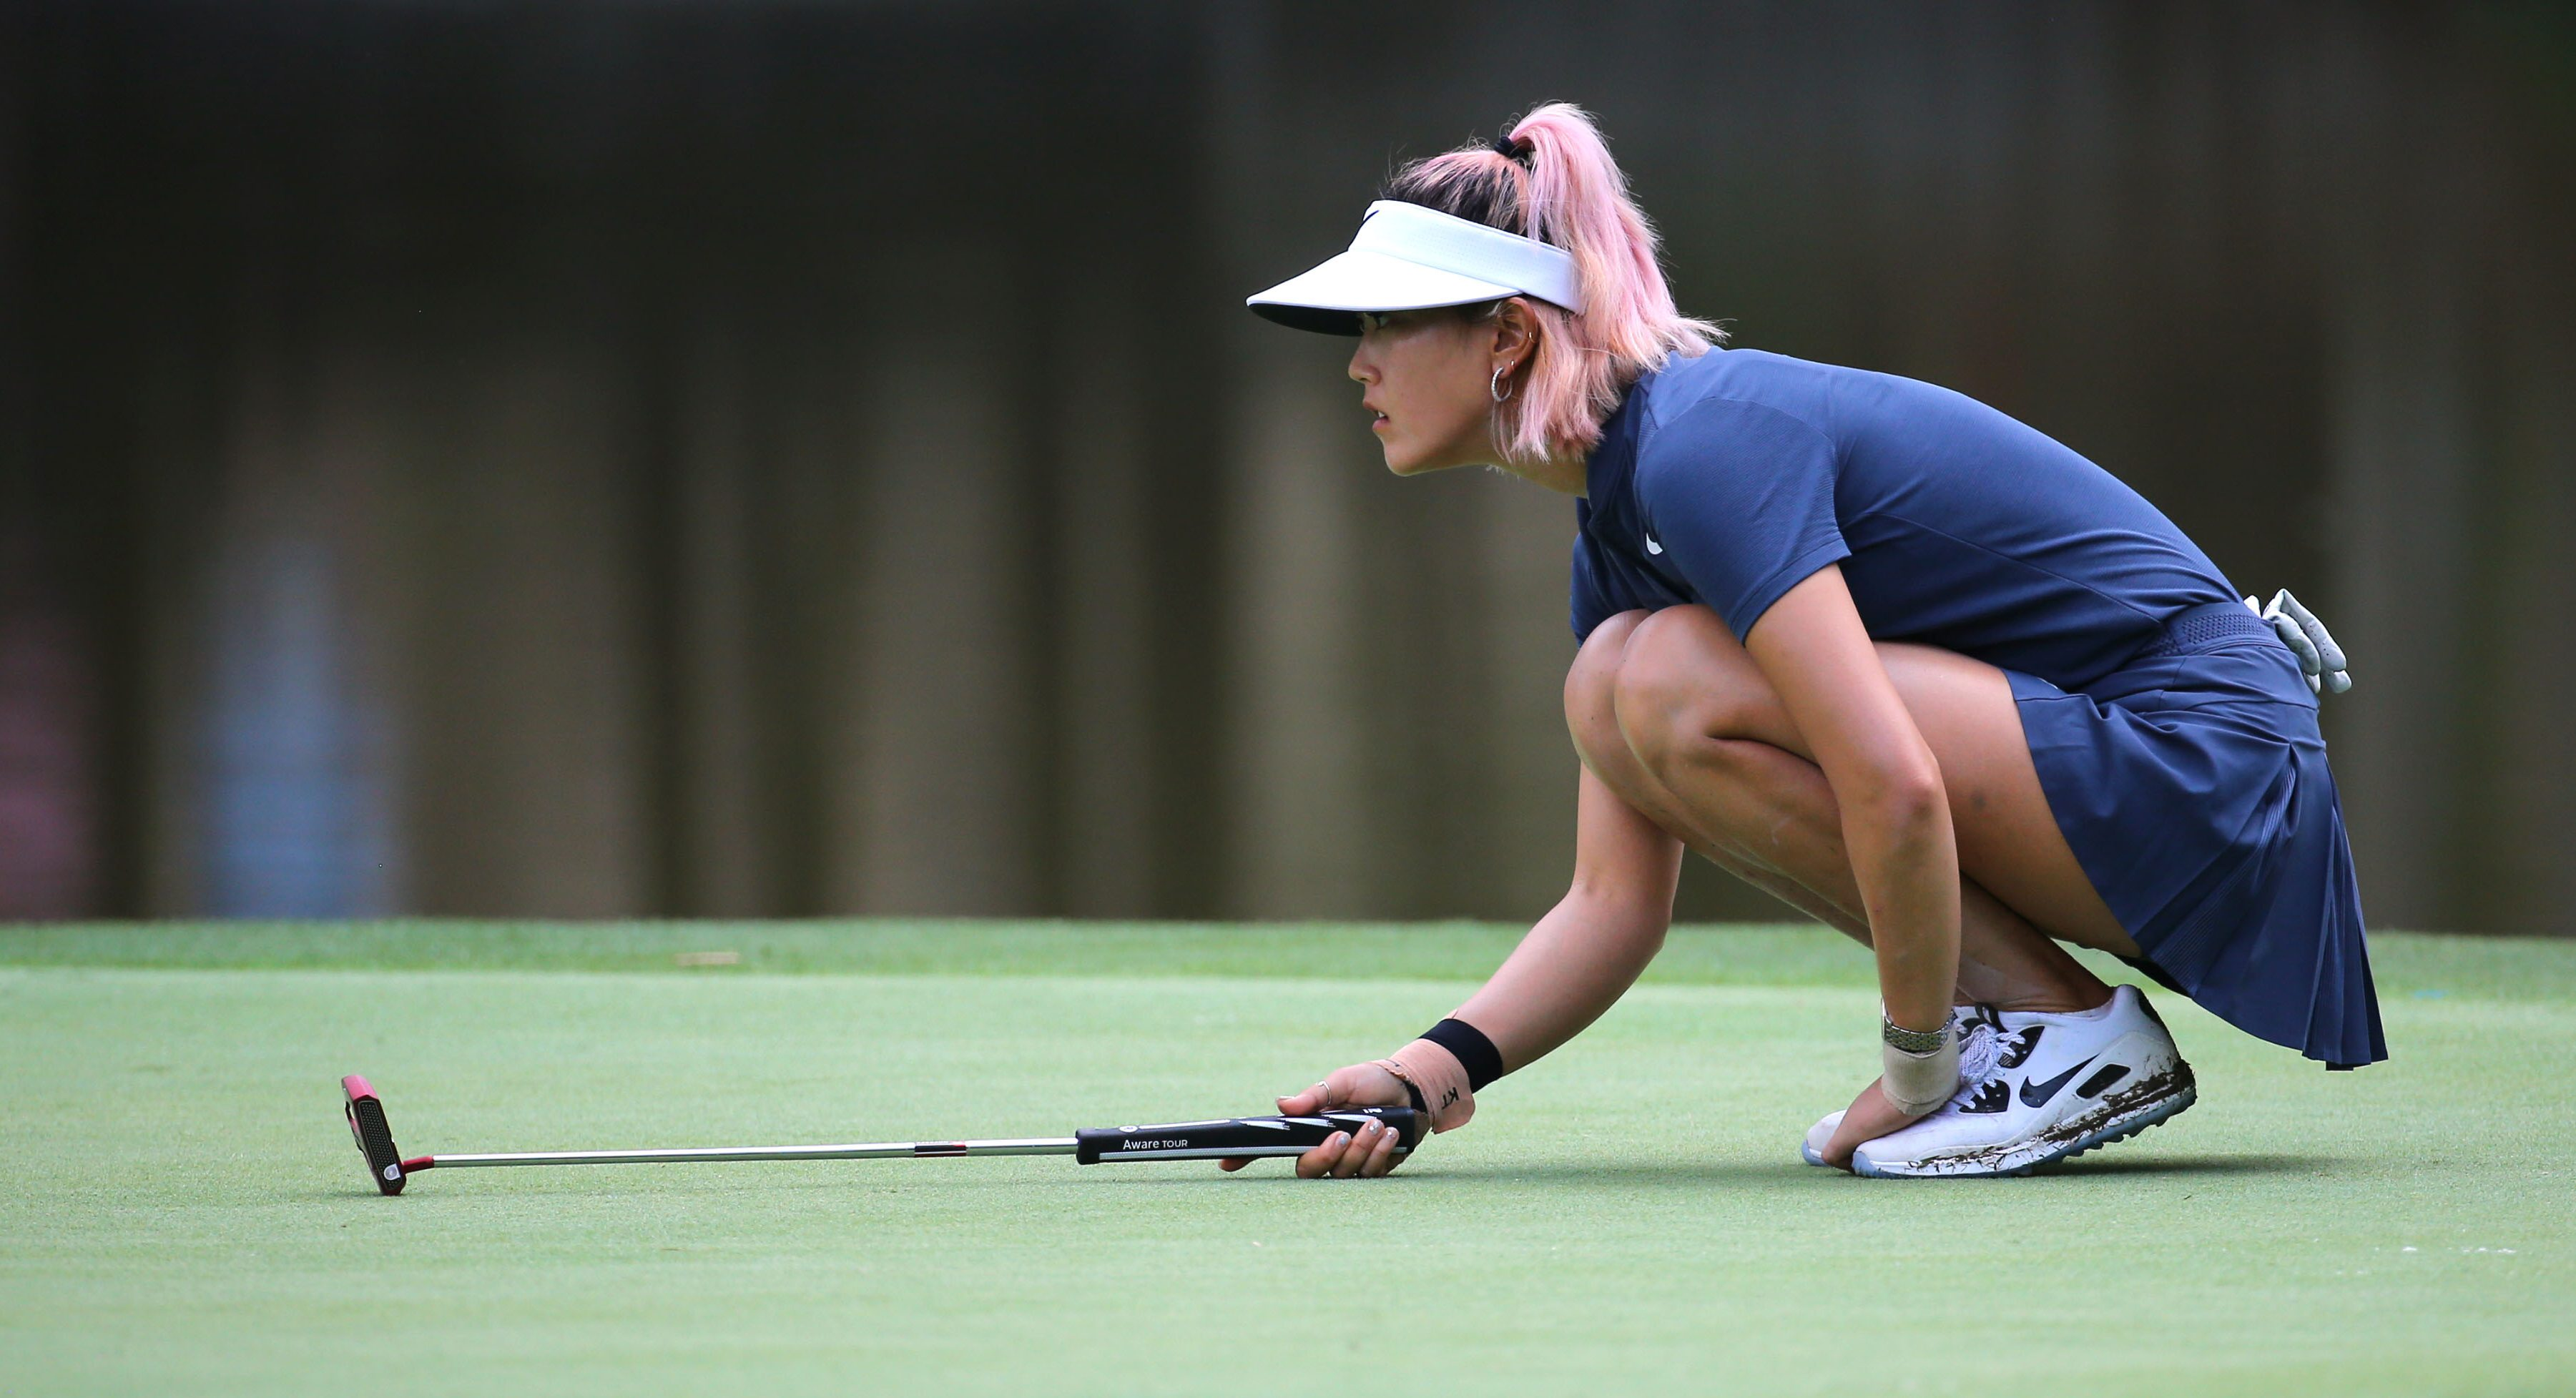 May 31, 2018; Shoal Creek, AL, USA; Michelle Wie lines up a putt on the ninth green during the first round of the U.S. Women's Open Championship golf tournament at Shoal Creek. Mandatory Credit: Jasen Vinlove-USA TODAY Sports